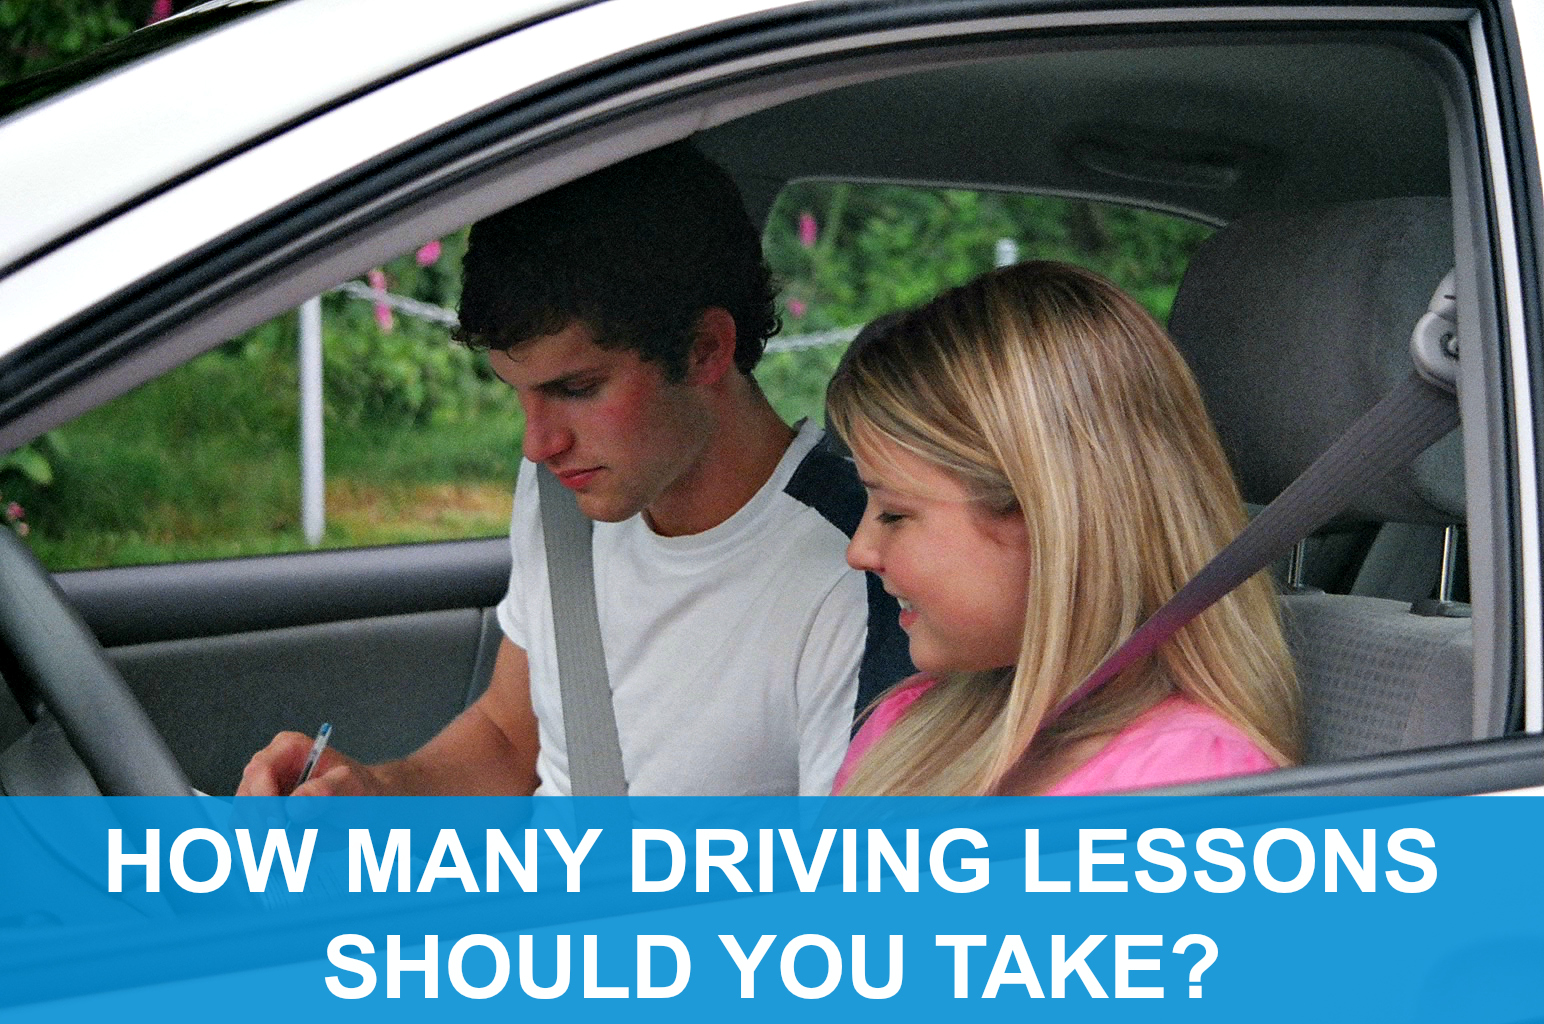 How Many Driving Lessons Should You Take?